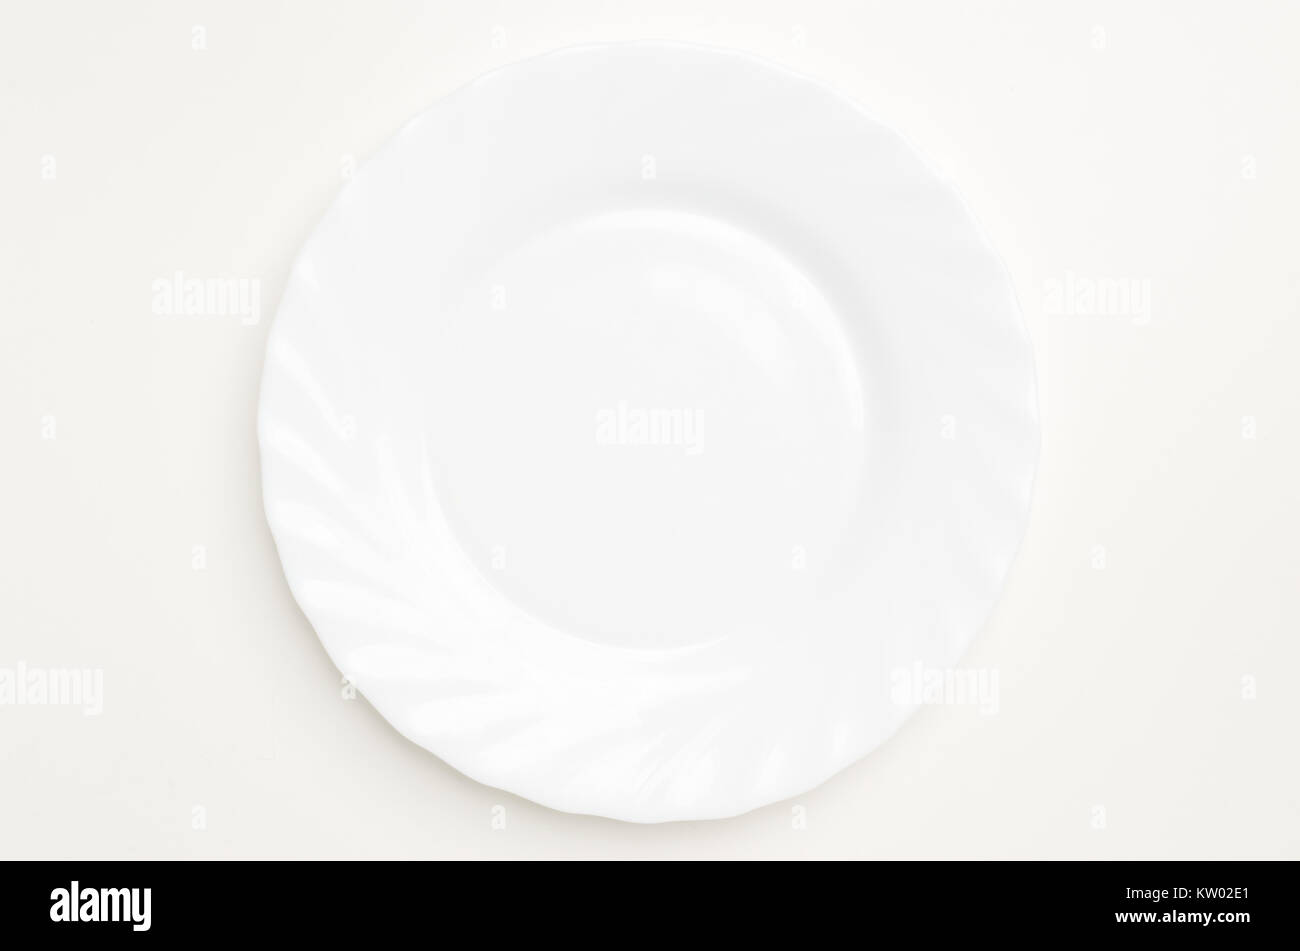 Empty white isolated plate on white table. - Stock Image